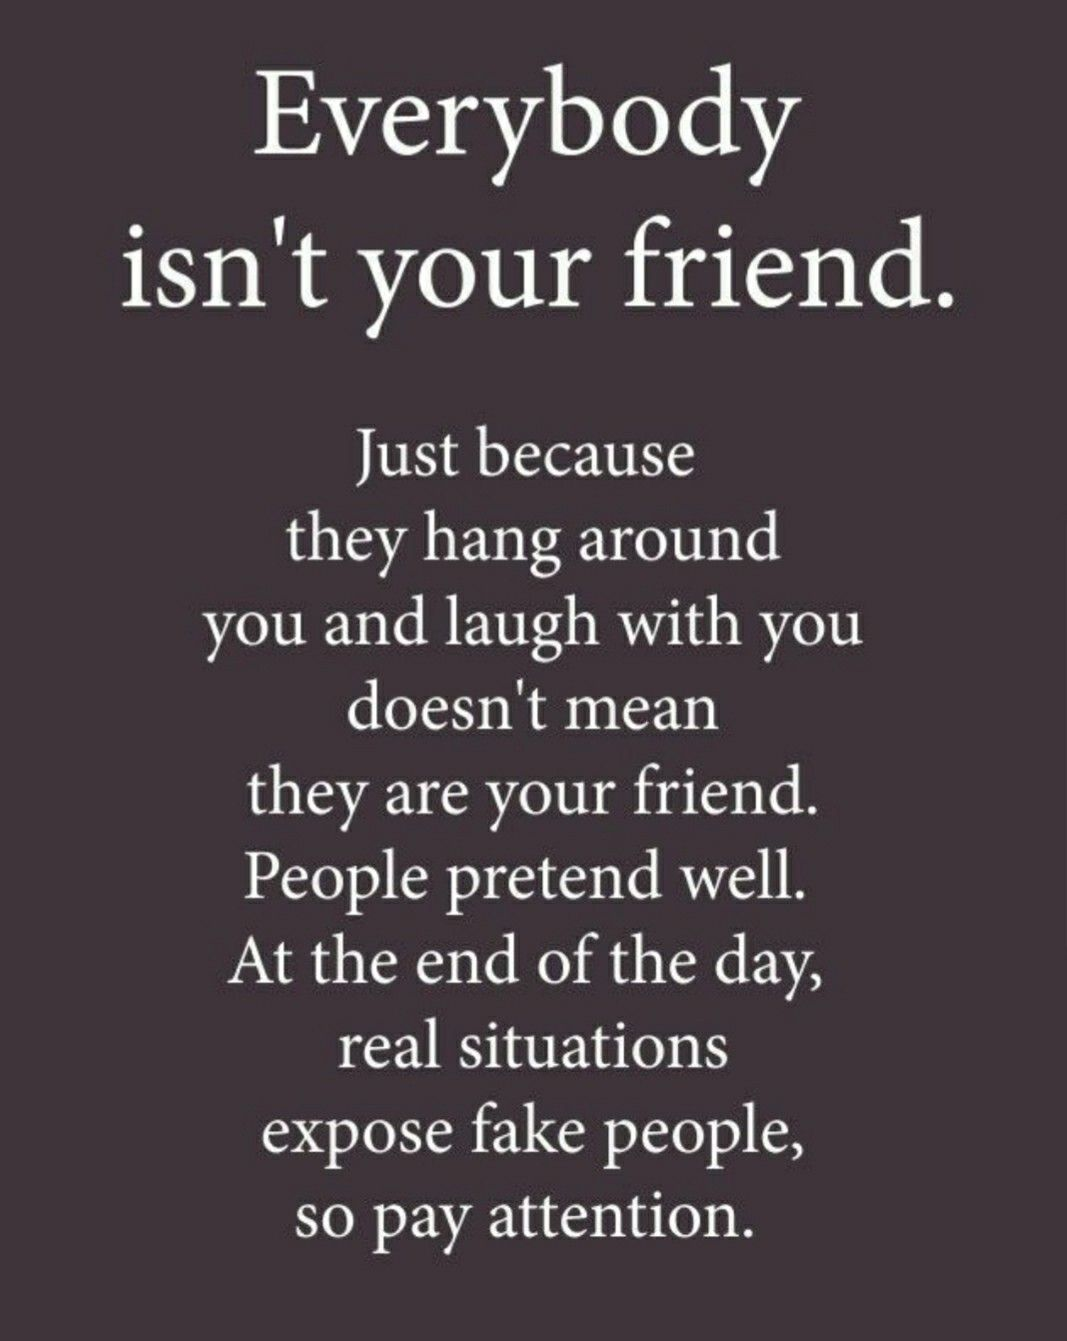 Quotes to live by quotes on fake friends quotes